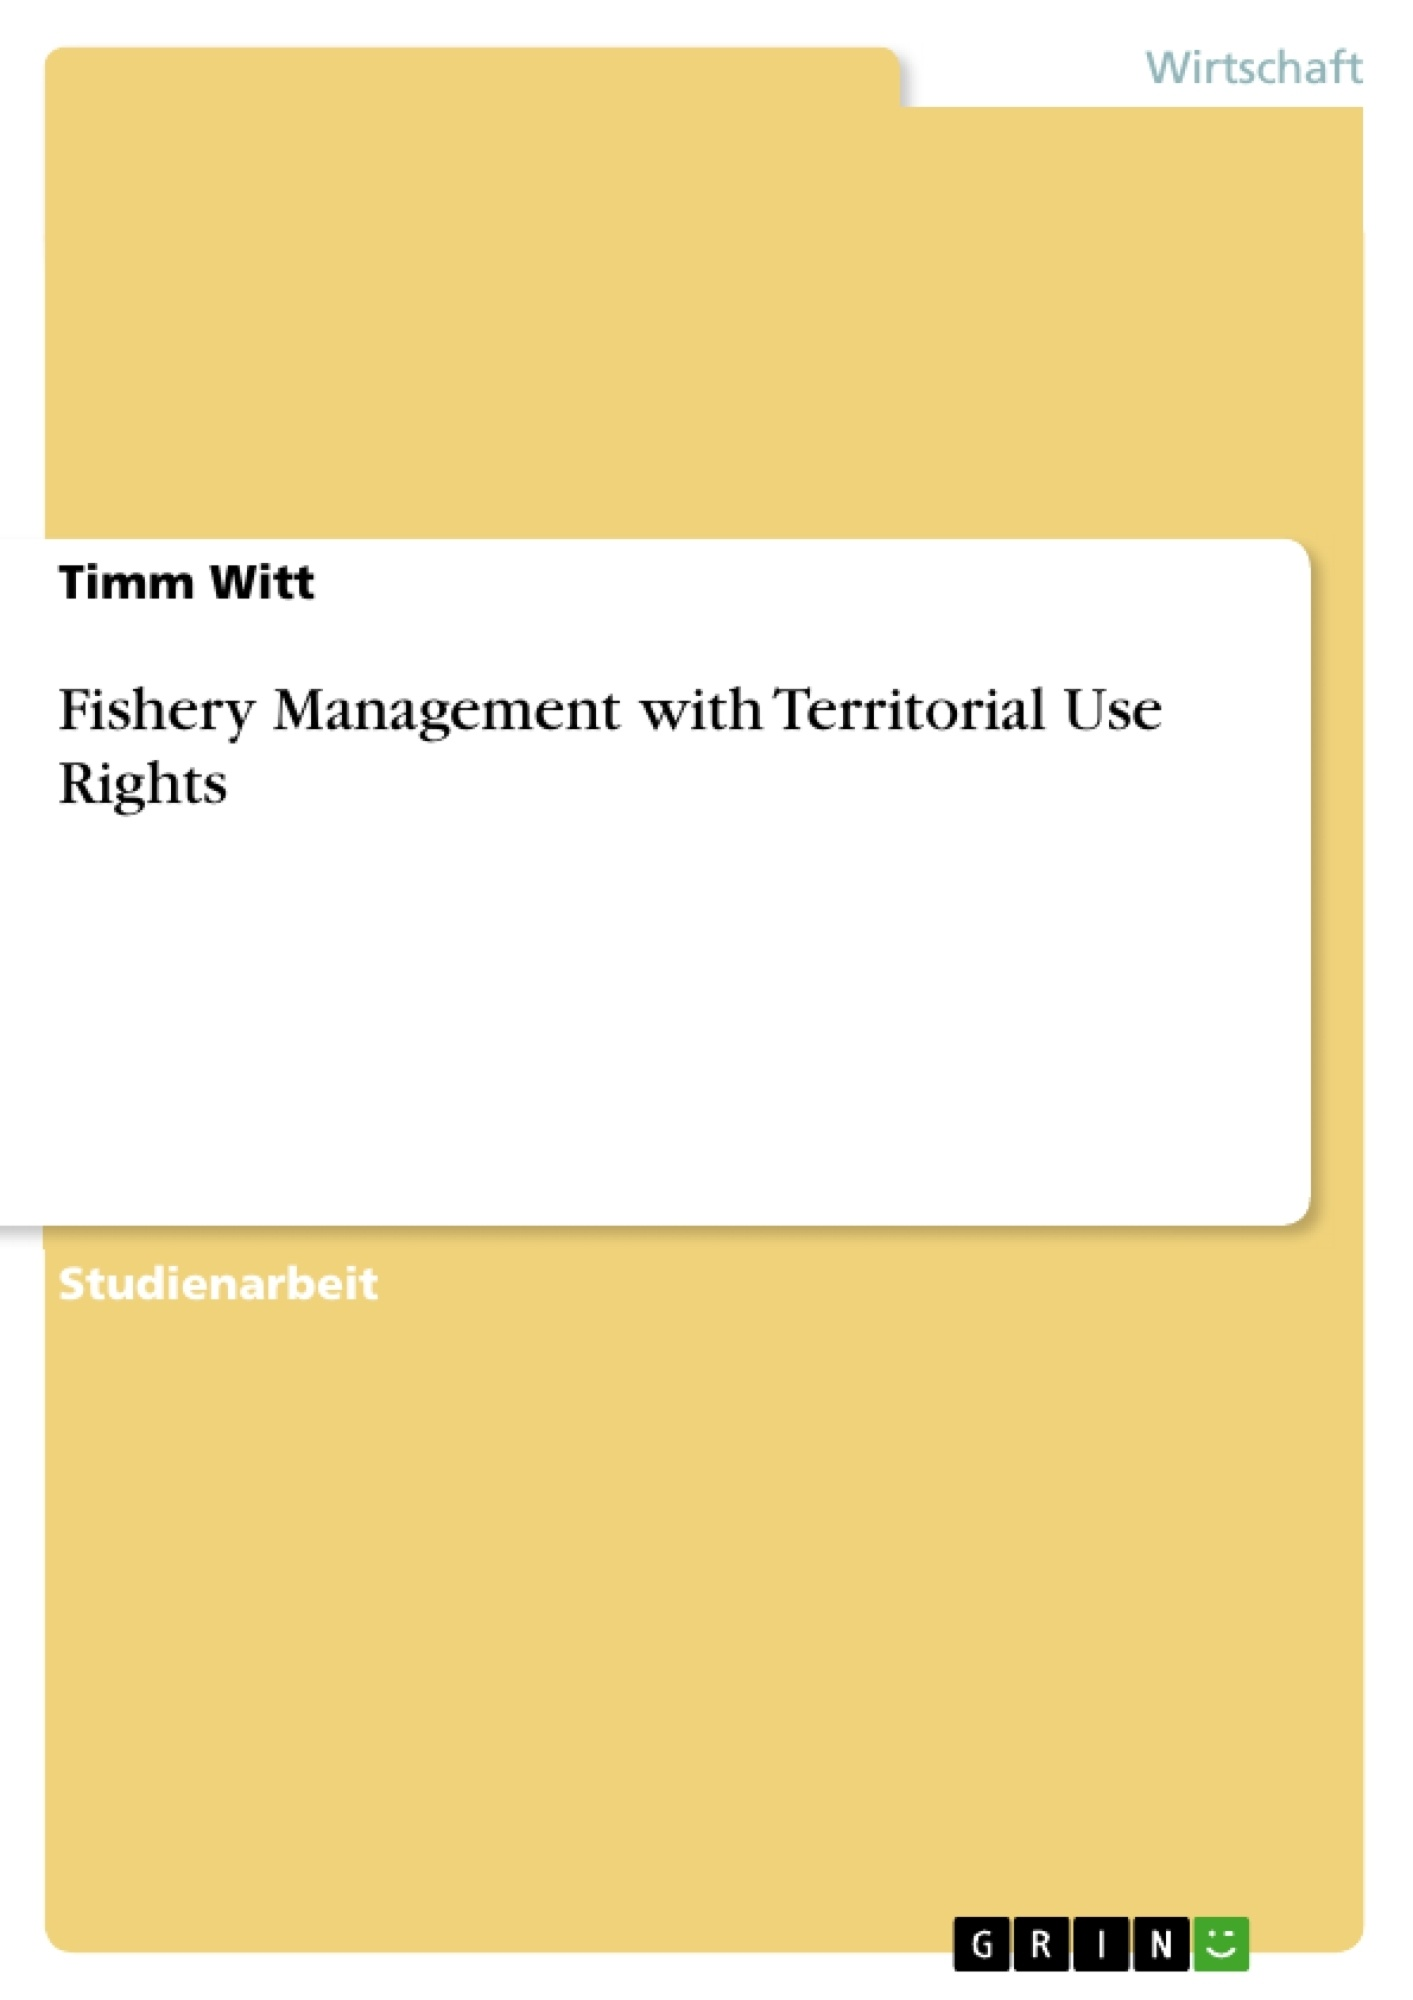 Titel: Fishery  Management with Territorial Use Rights